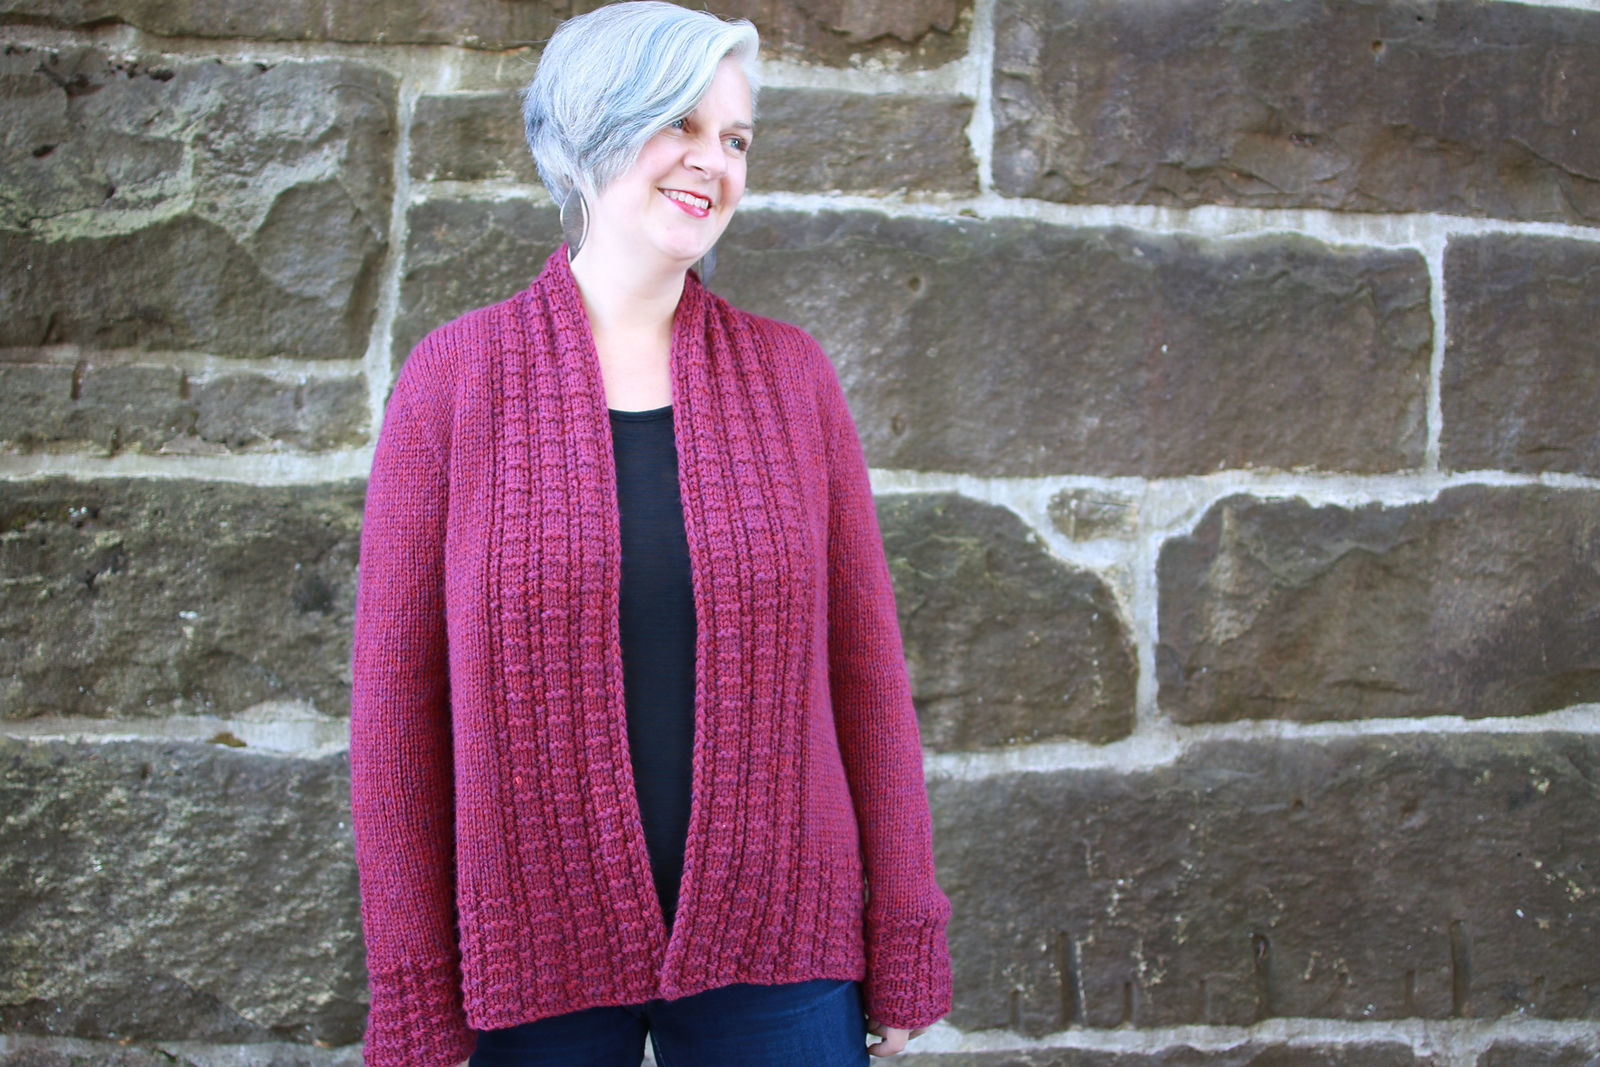 Women's knit cardigan Peverly. Free written pattern.